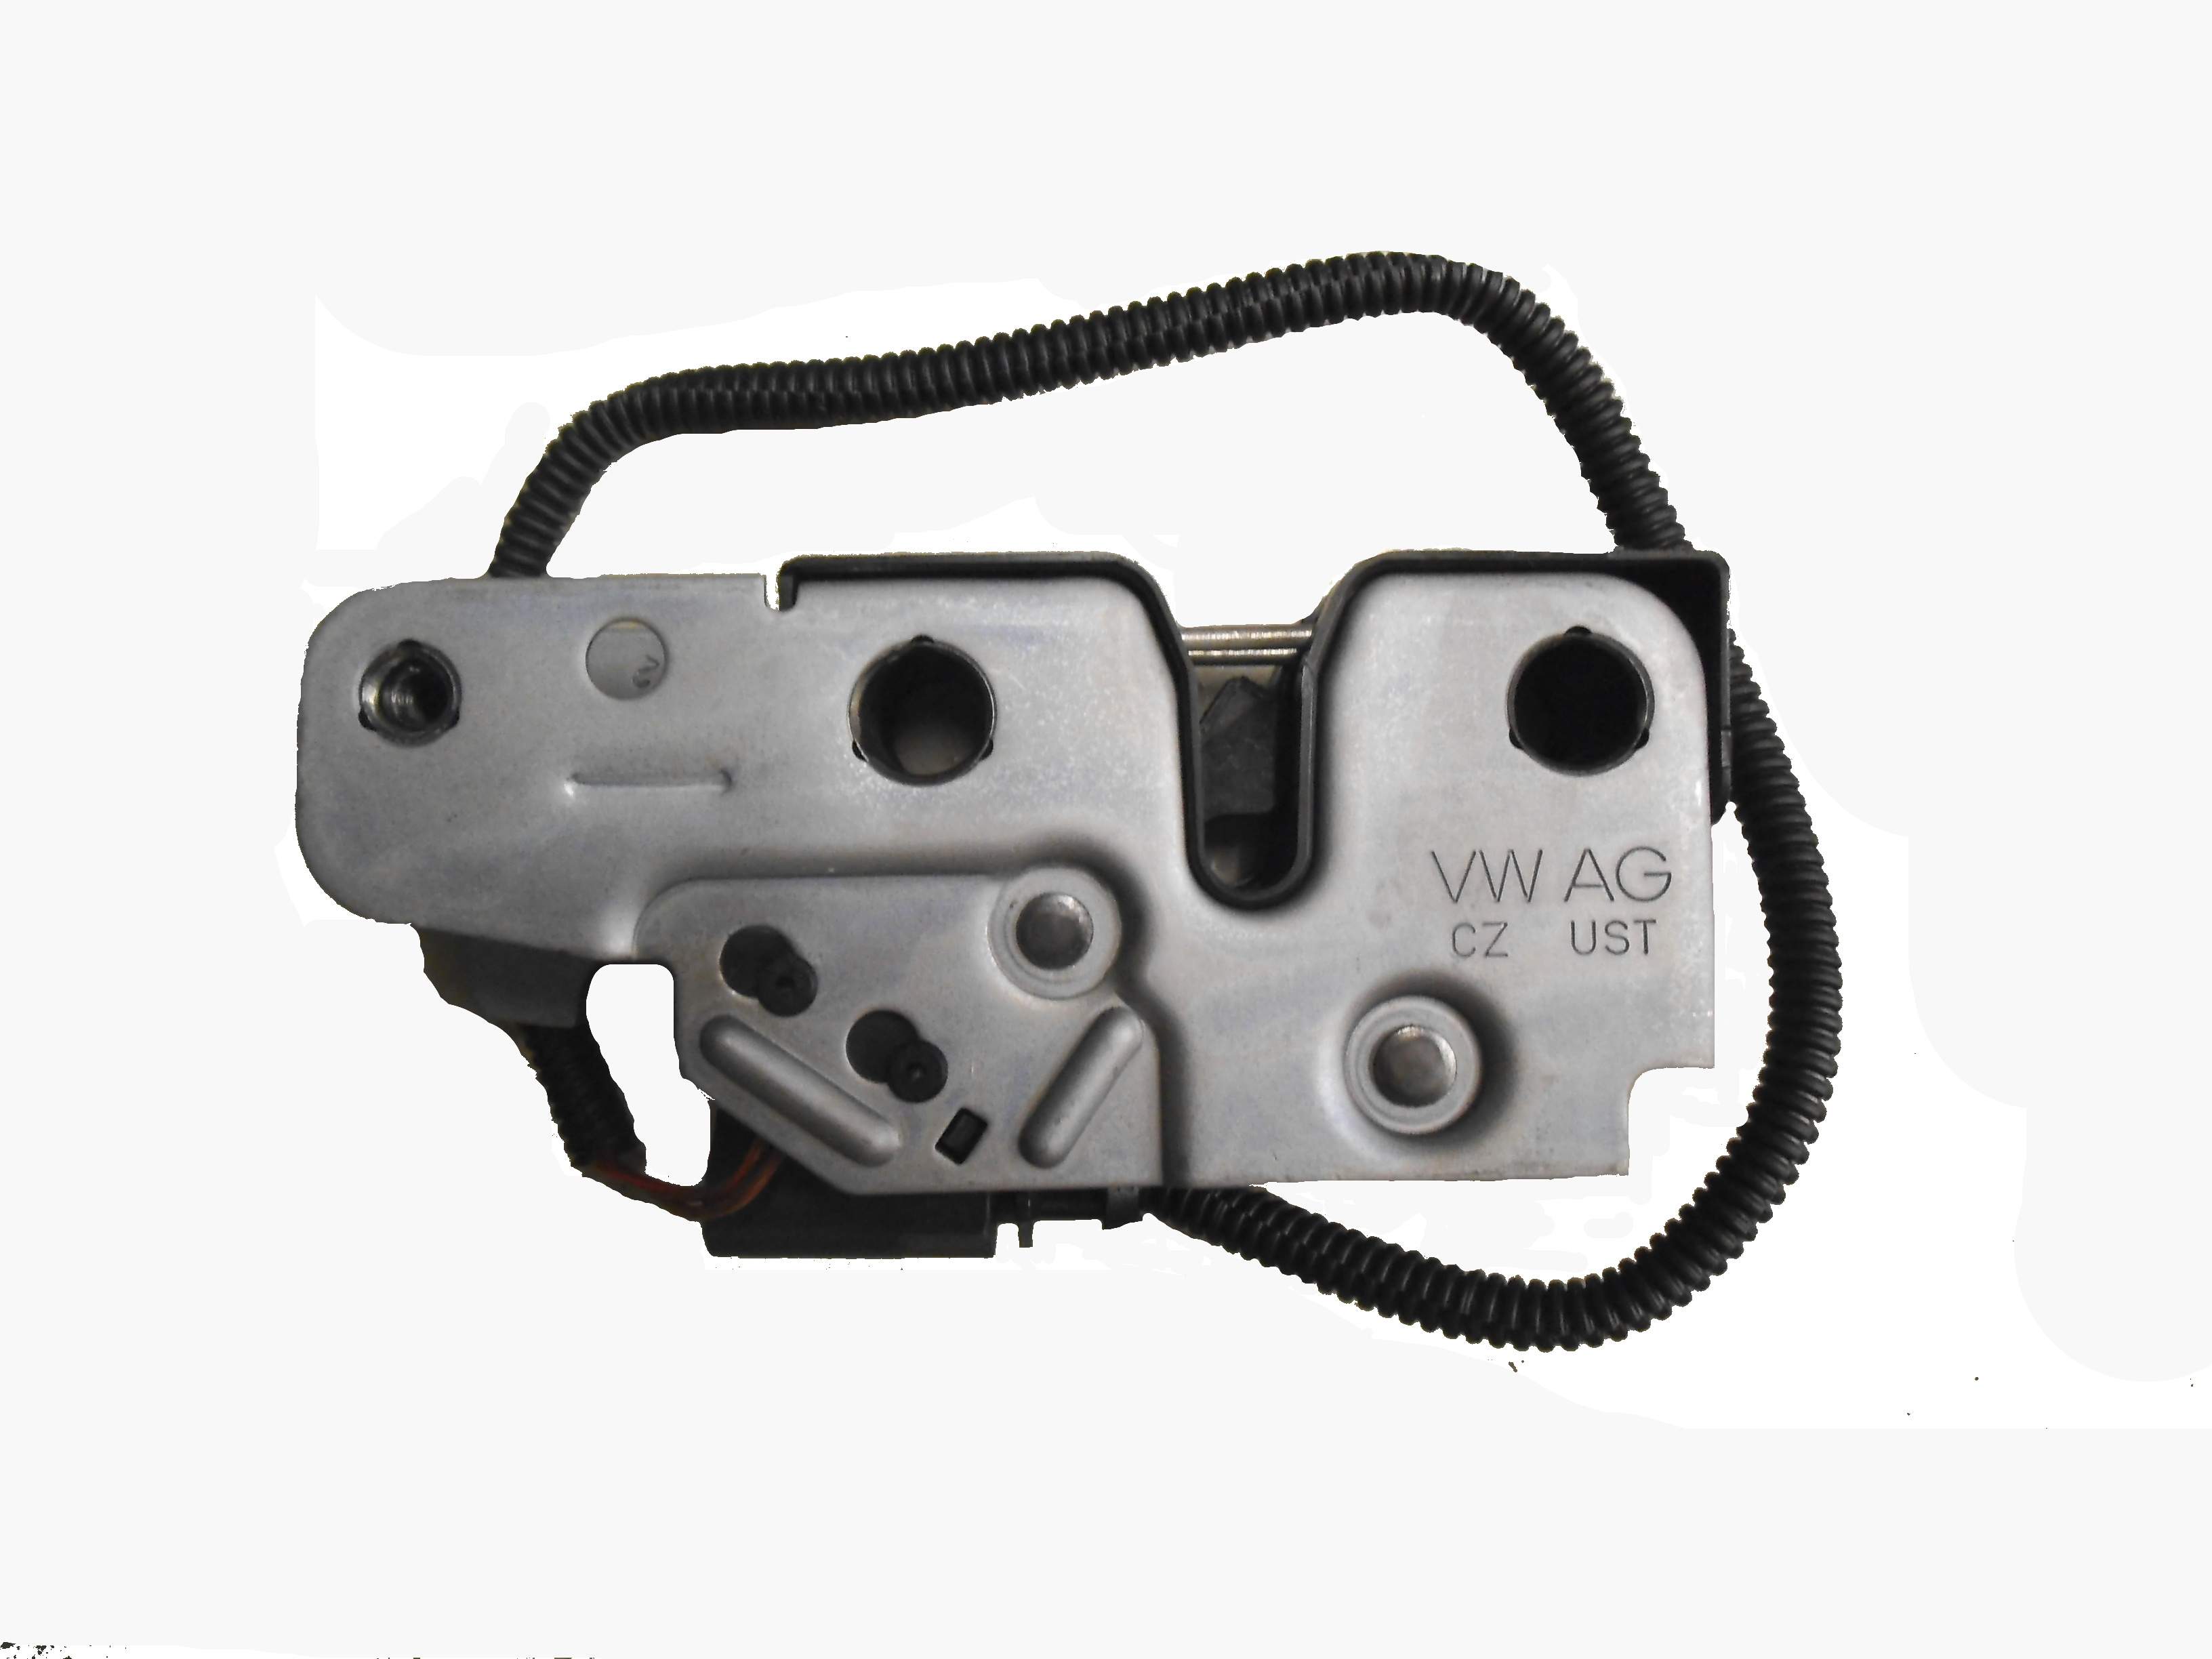 Genuine VW Jetta Bonnet Latch Catch 2006 - 2010